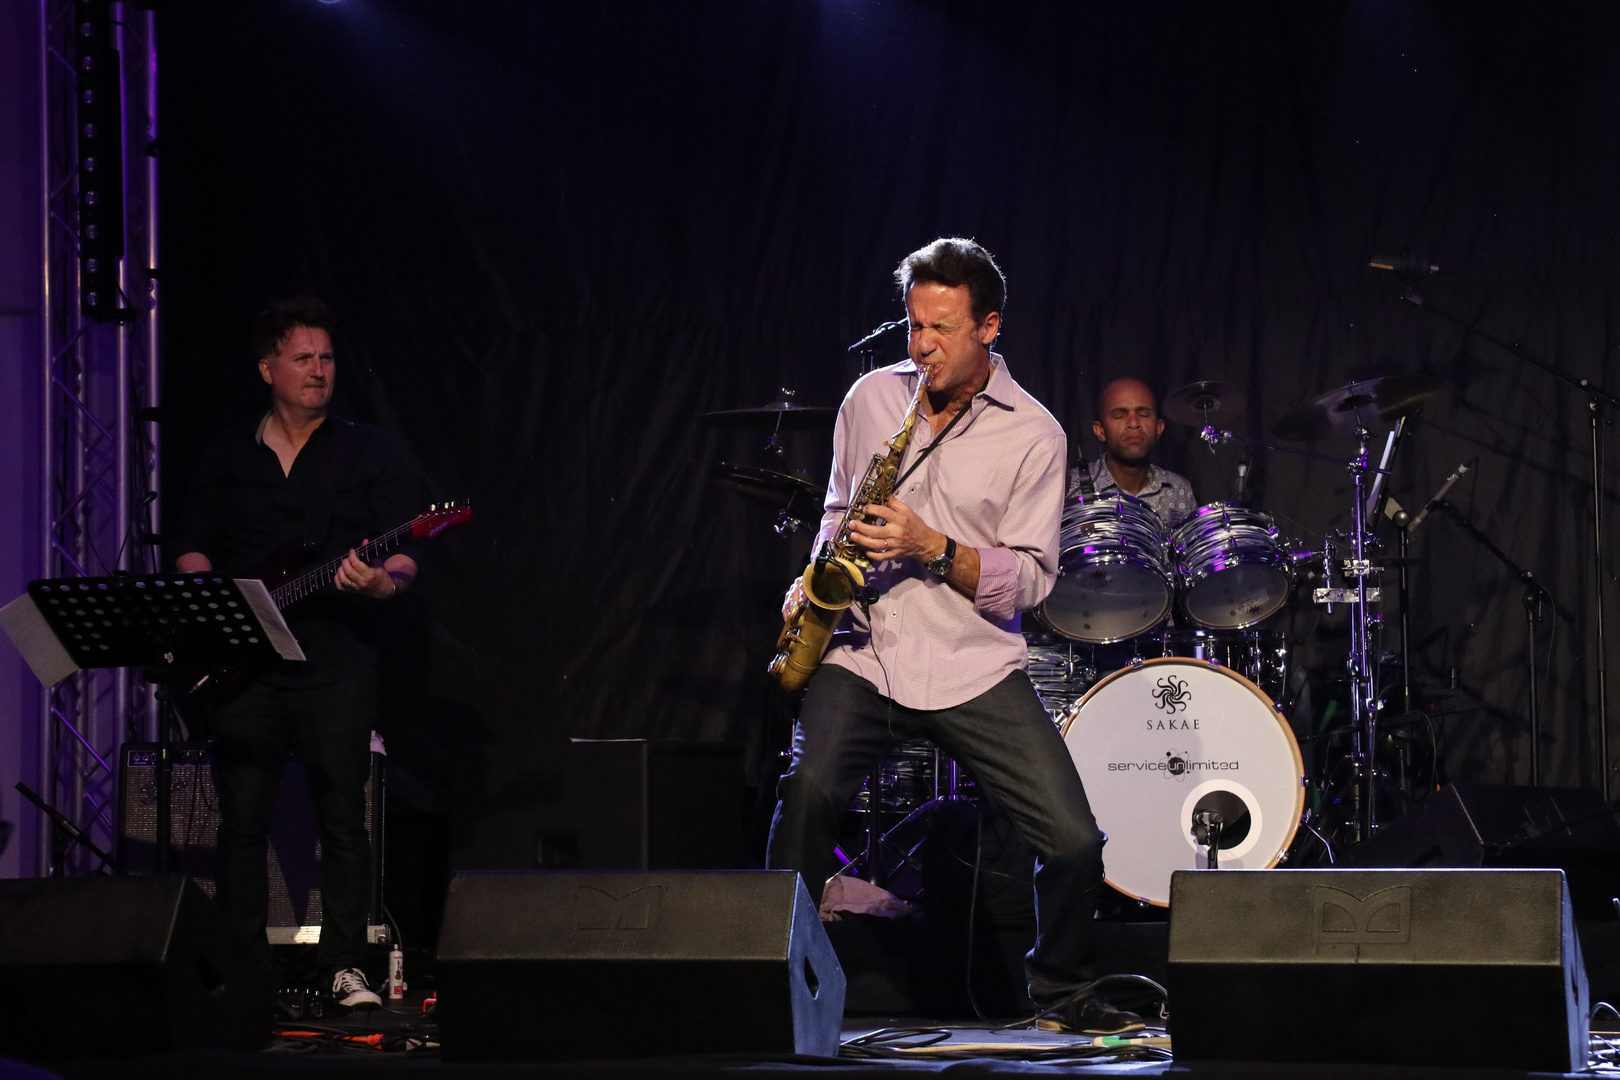 Eric Marienthal at Algarve Smooth Festival 2016